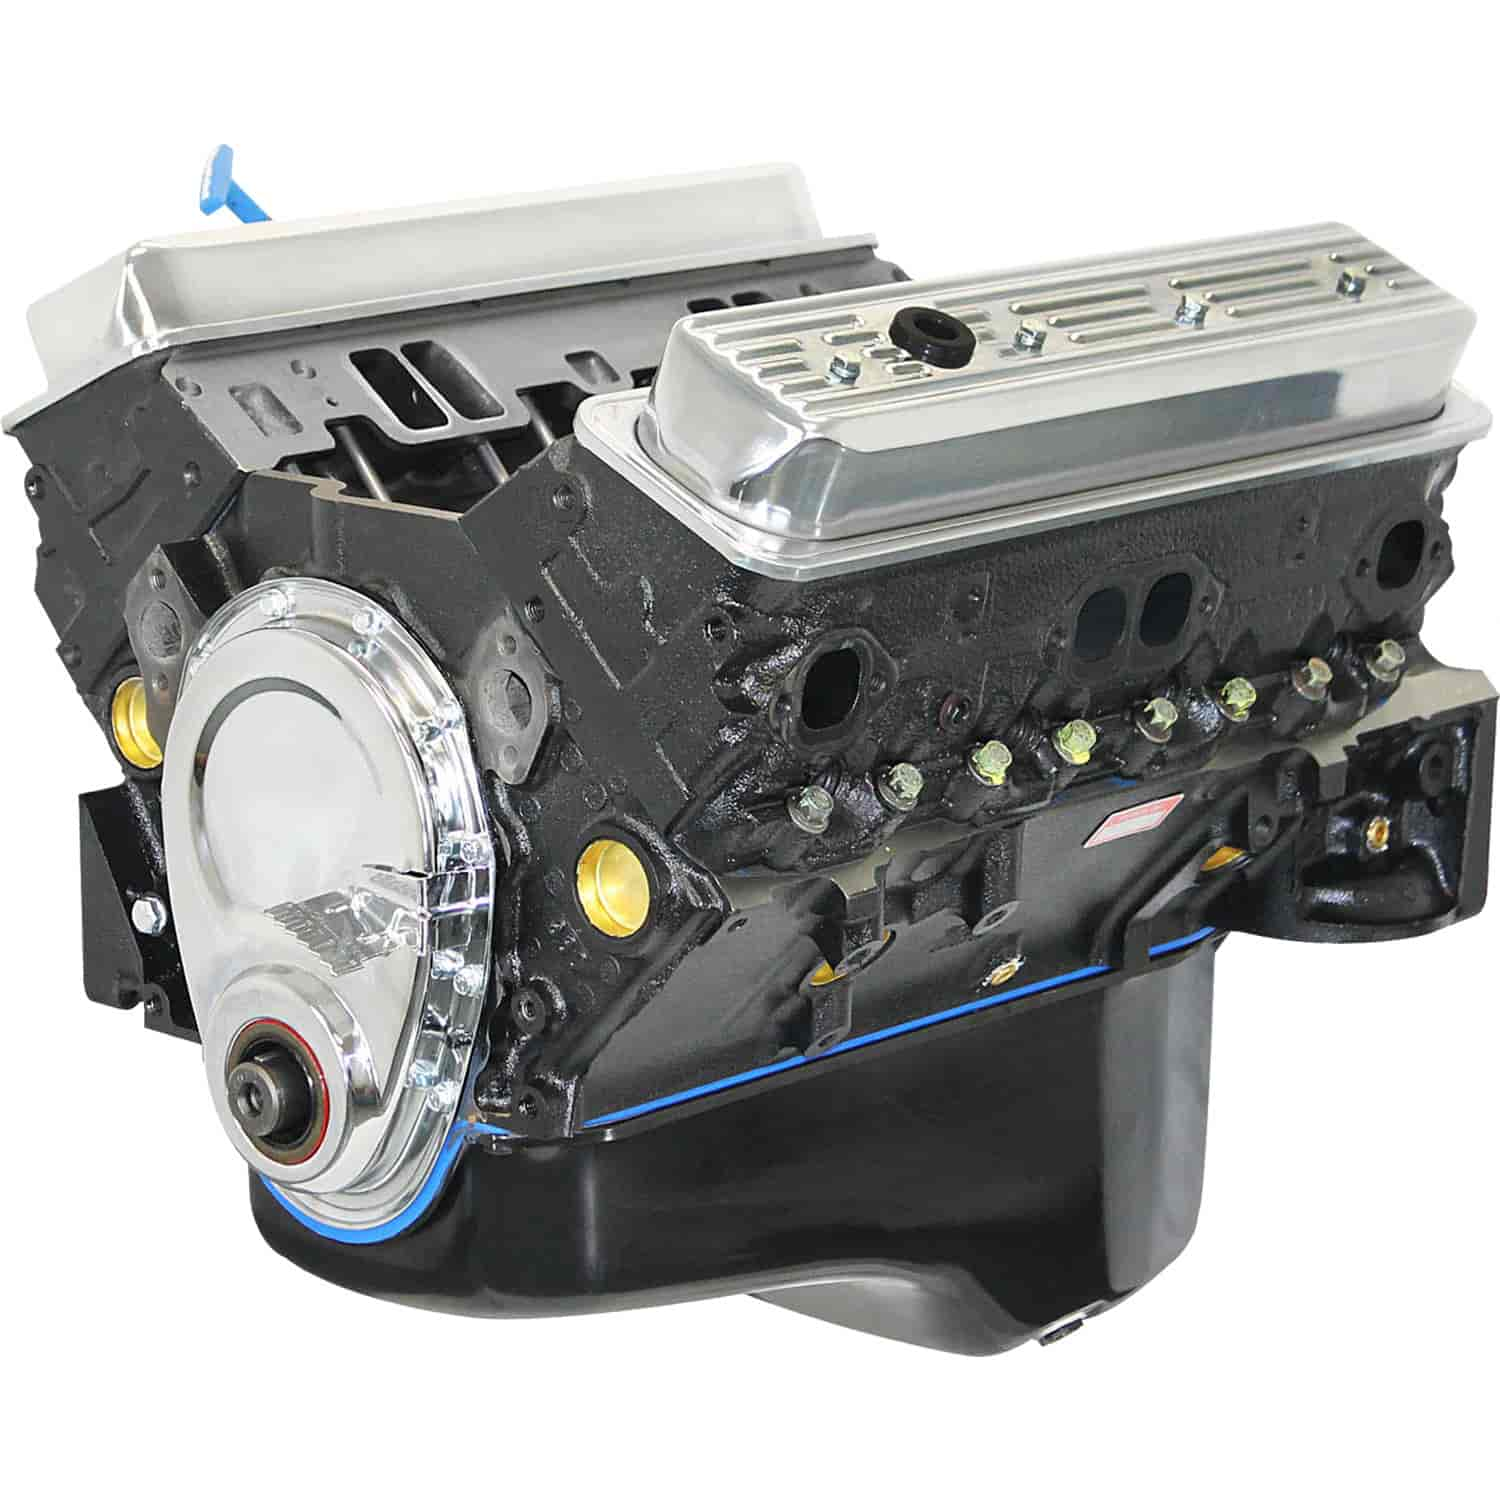 Blueprint Engines Chevy Small Block 350ci Base Crate Engine 373HP 400TQ  w/Vortec Cast Iron Heads